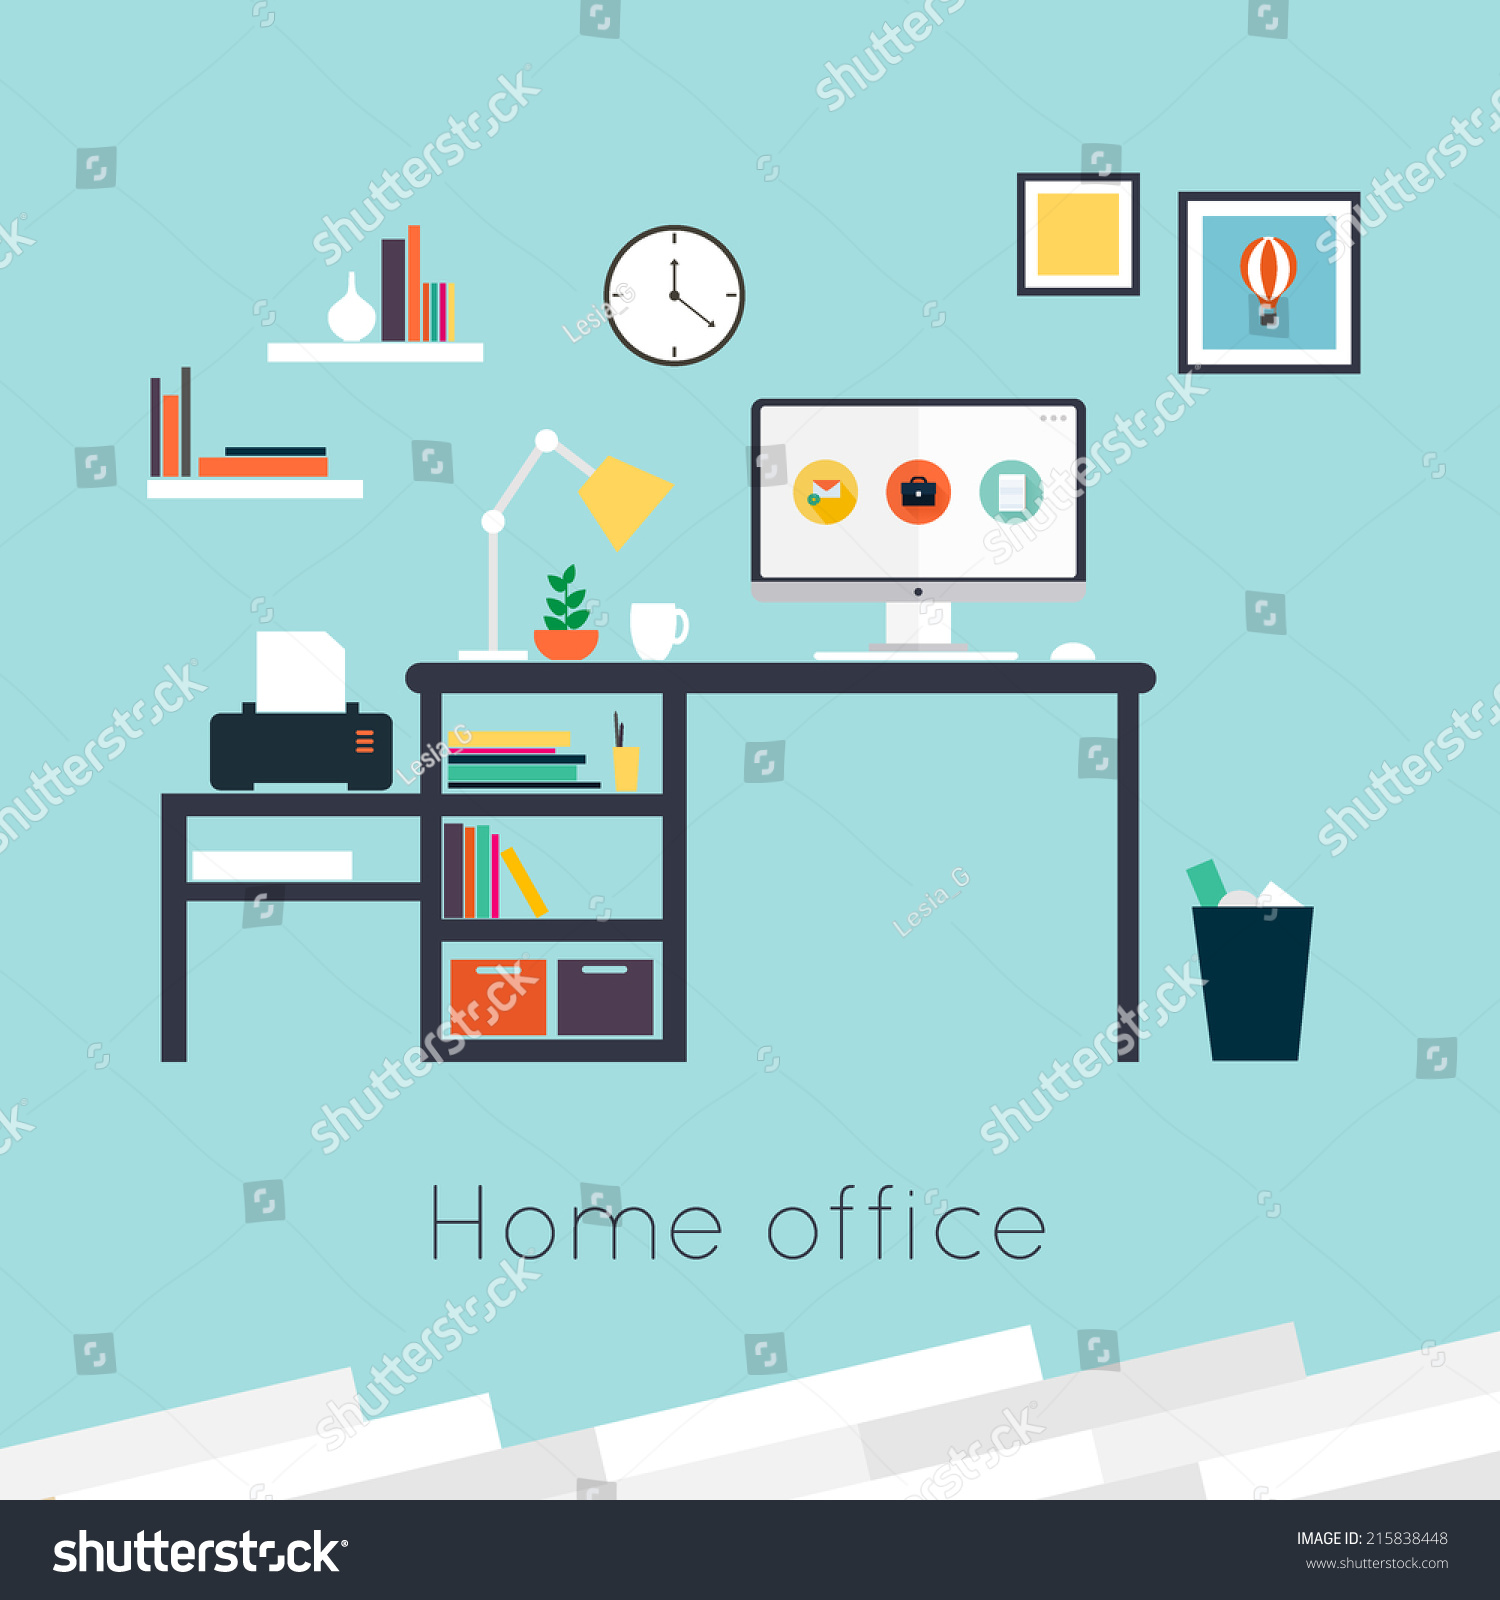 home office furniture accessories flat design stock vector 1500x1600